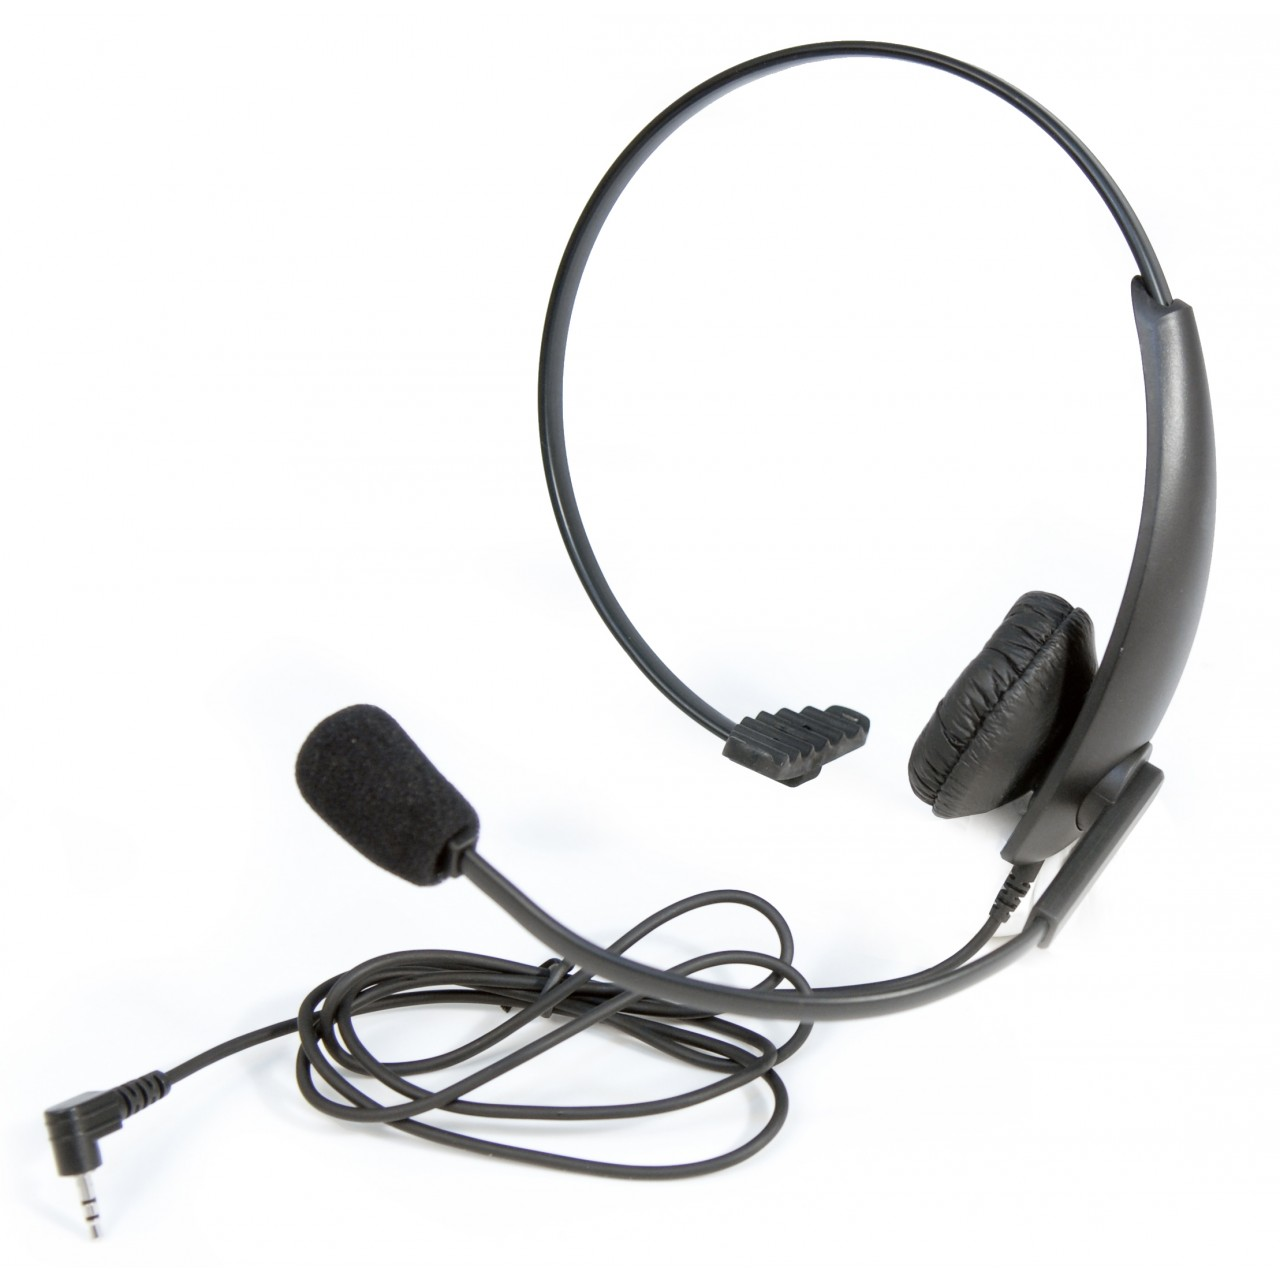 HS-SR72240 Headsets and earphones - ICOM